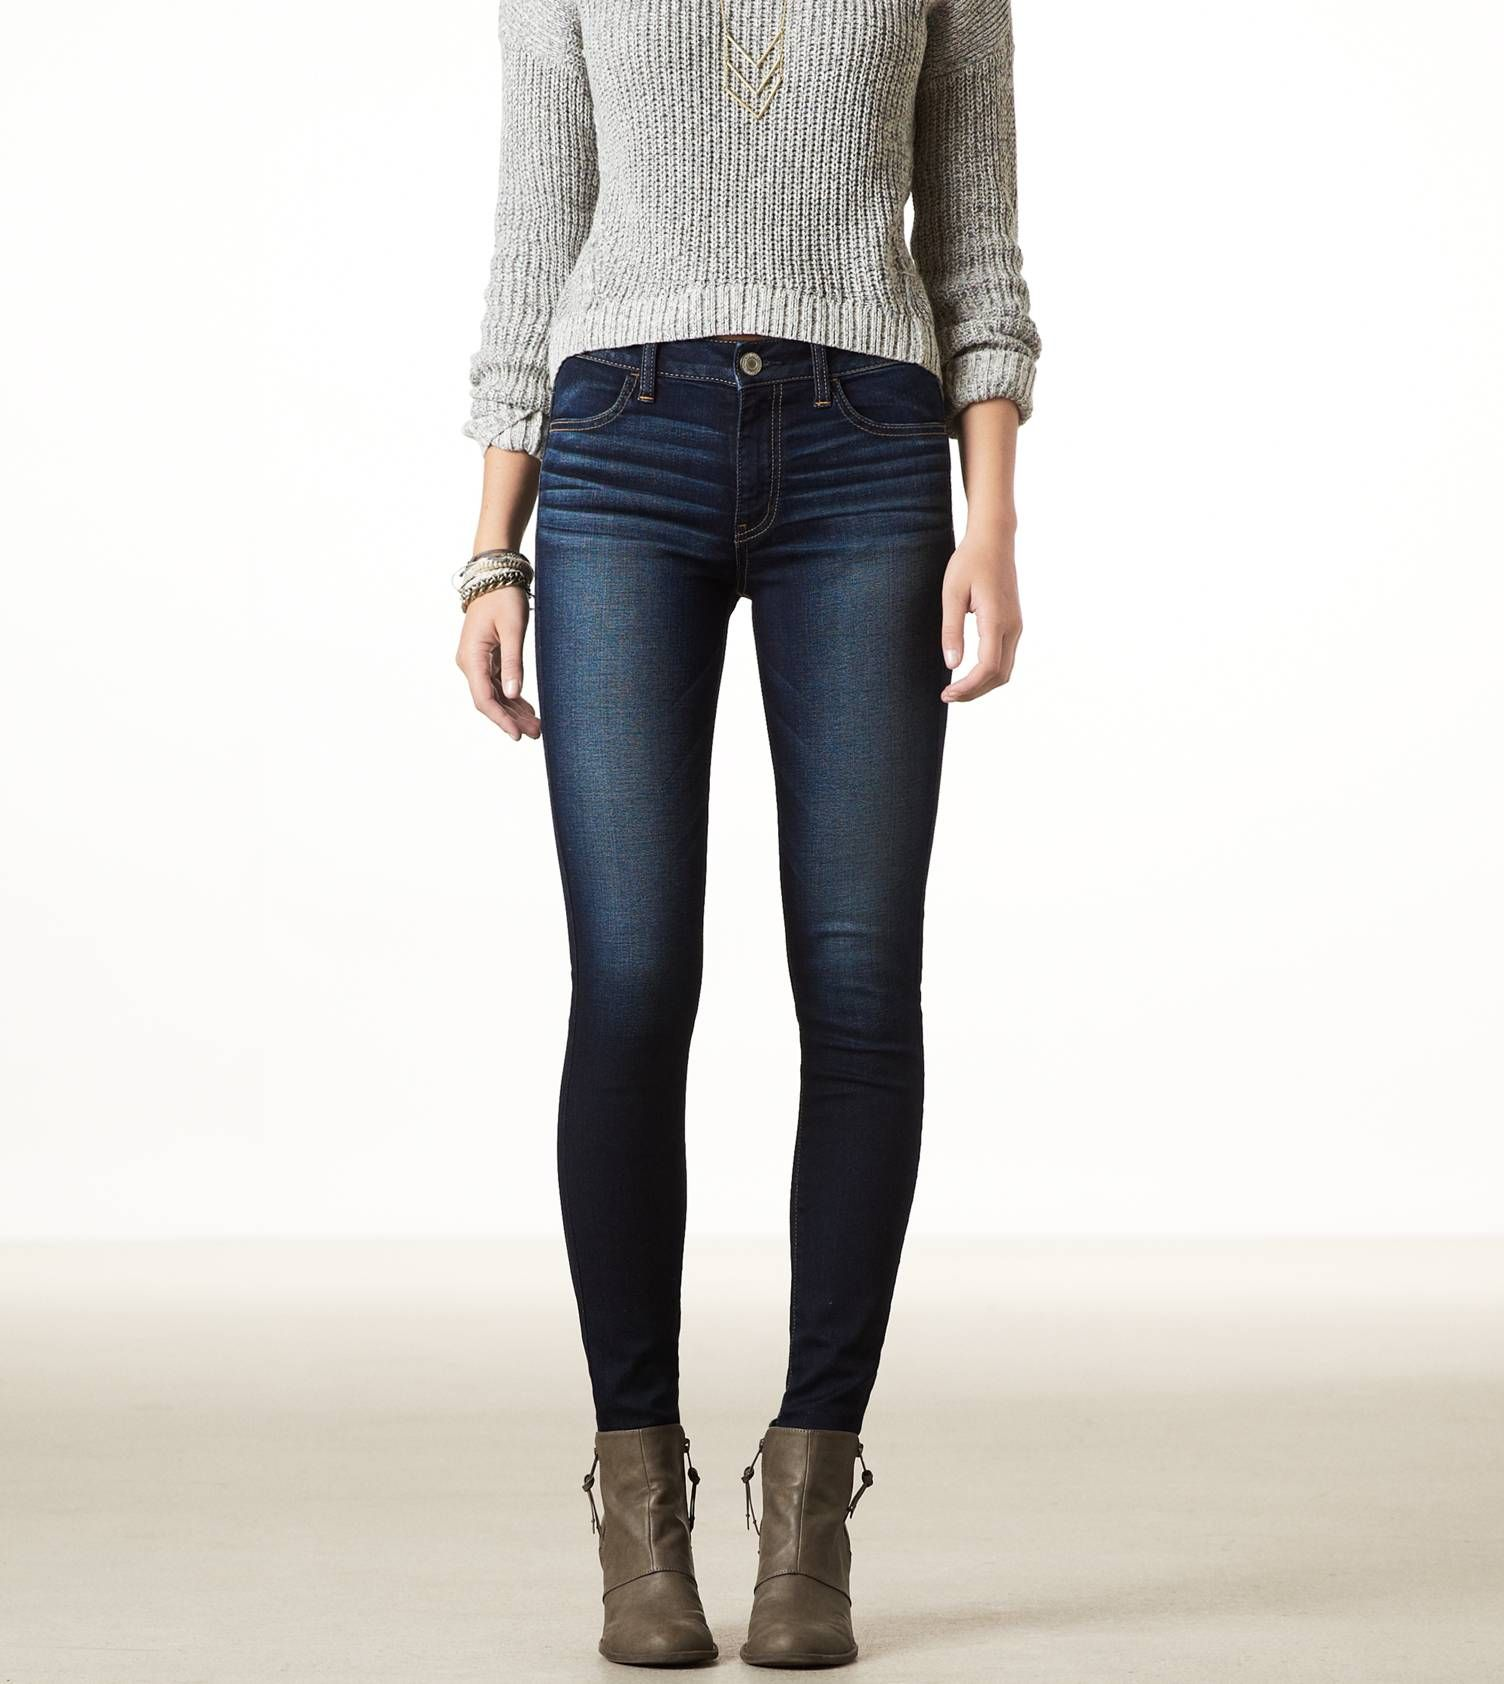 Bought 2 pairs of these today. AE's high rise jeggings are so comfy and fit perfectly!